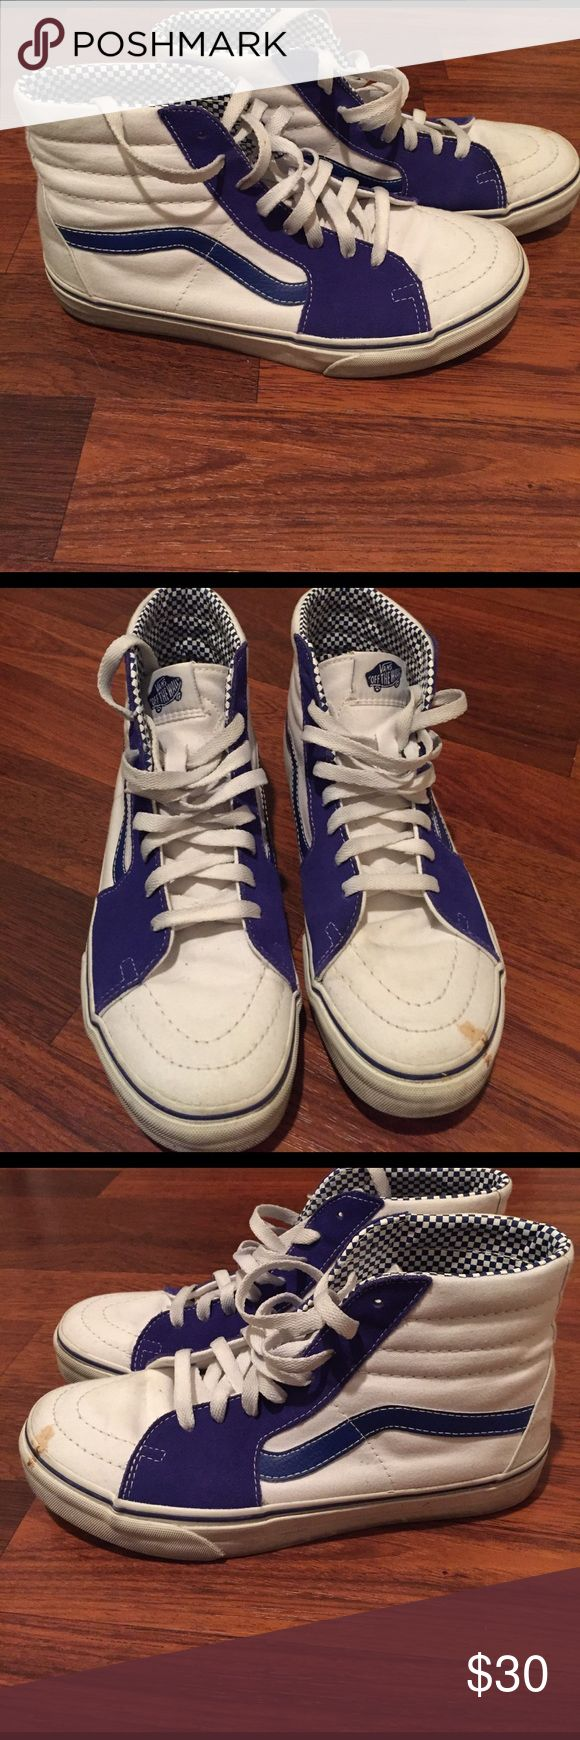 MOVING SALE! Need to get rid of in 2 wks! MAKE OFR Vans Sk8-Hi Men's 7.5/ Women's 9.0 with extra set of matching midnight blue laces Vans Shoes Sneakers